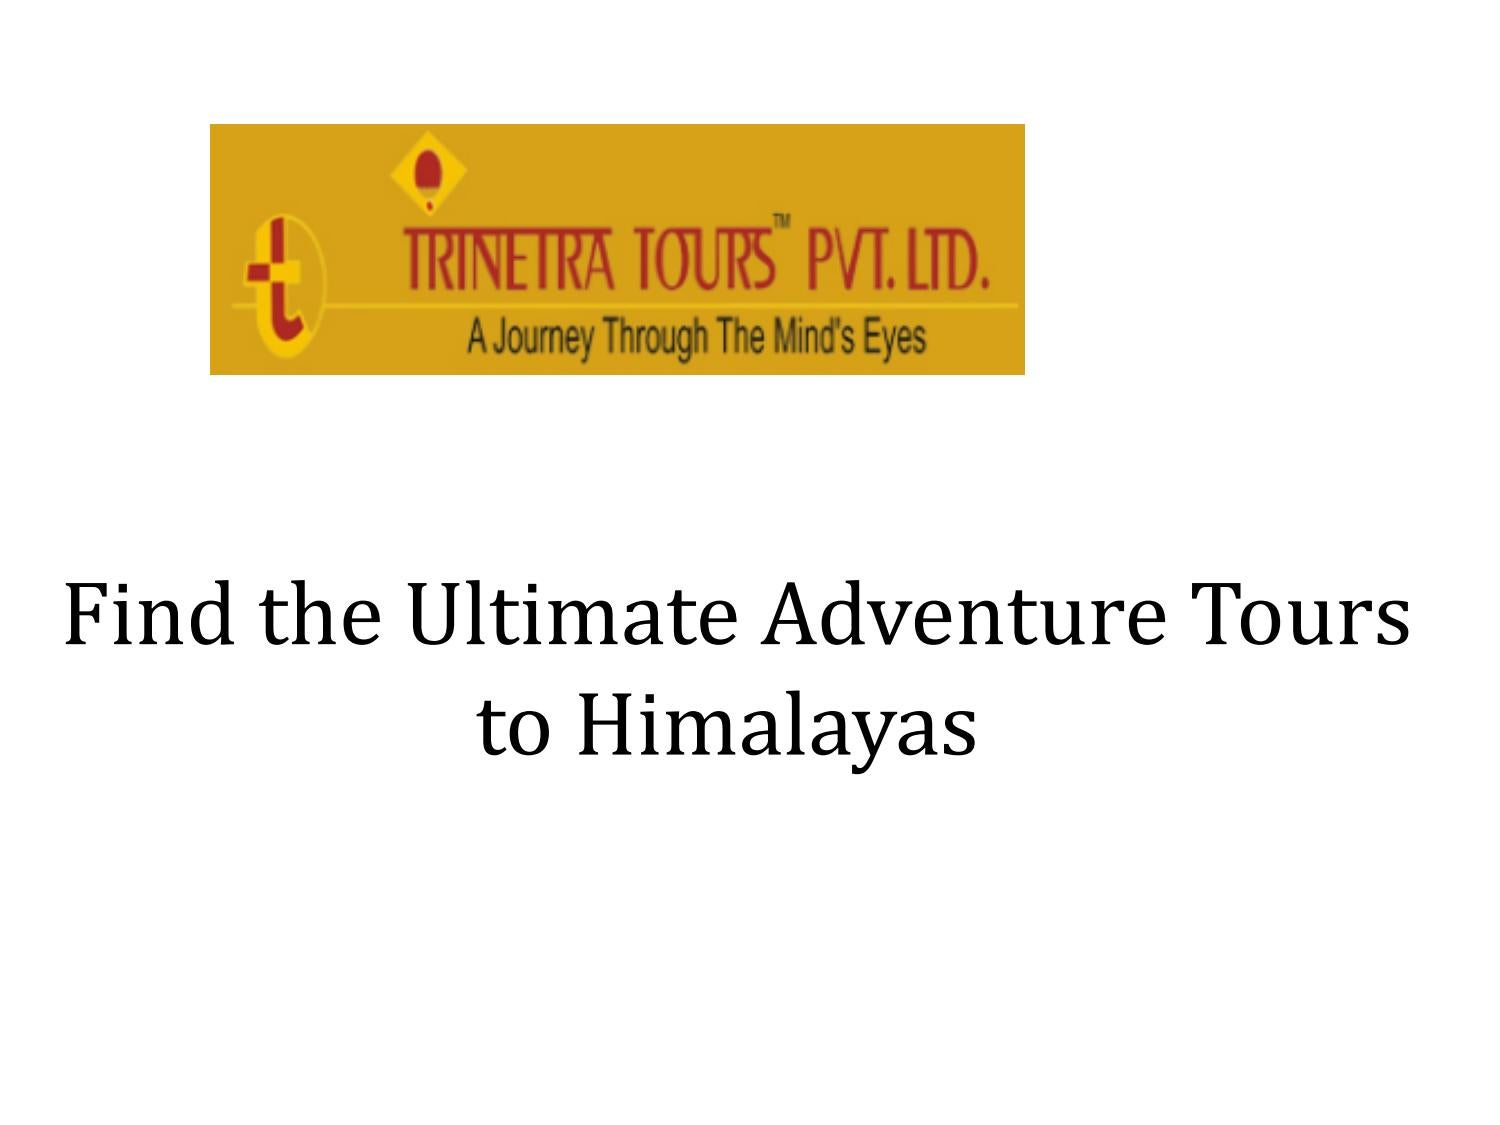 Find The Ultimate Adventure Tours to Himalayas